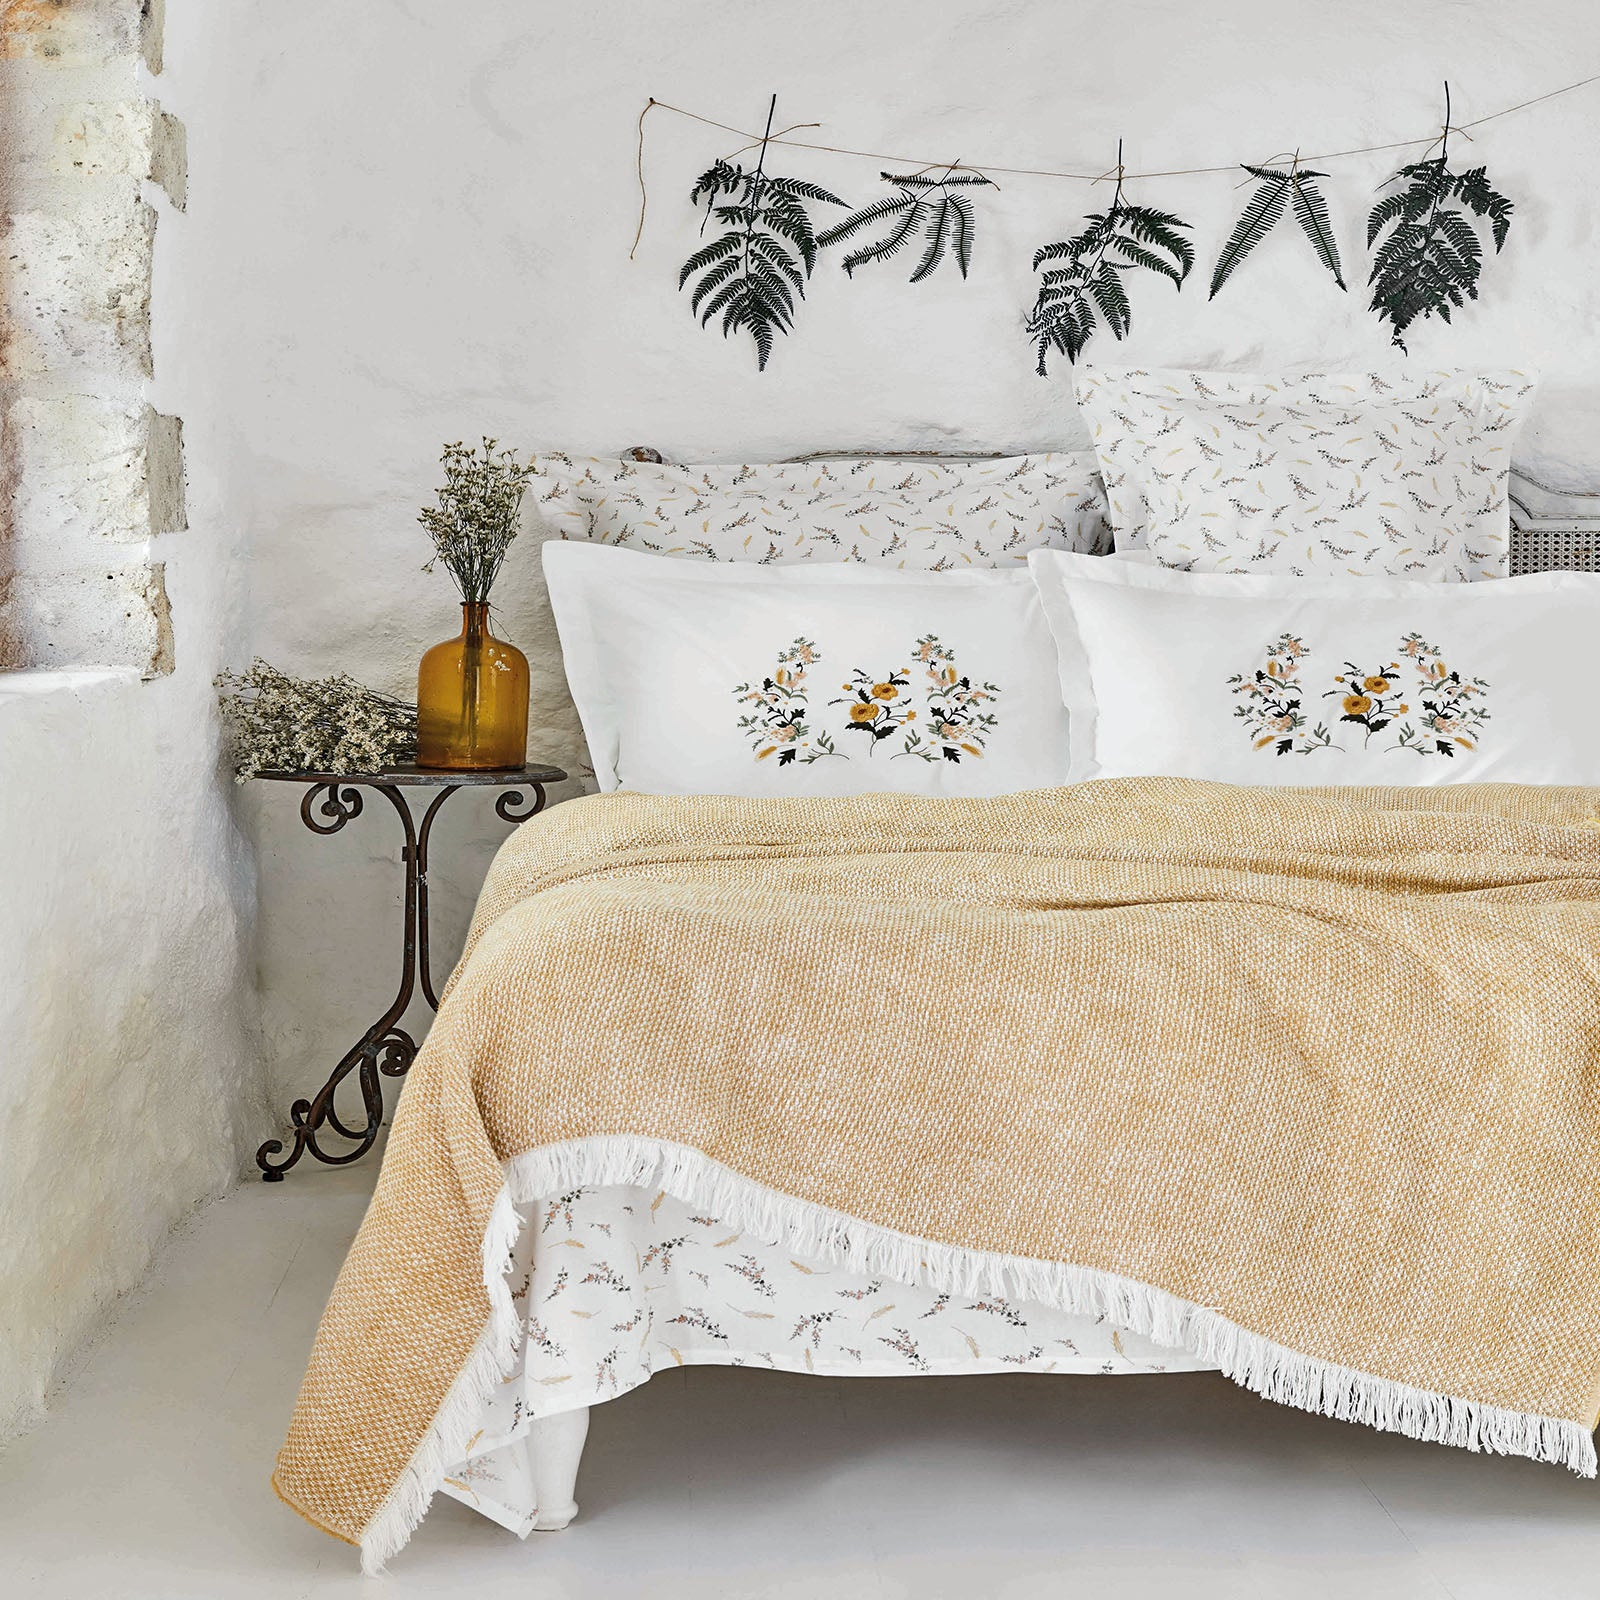 SPIKE  HARDAL Bedding  Set 200.16.01.0051